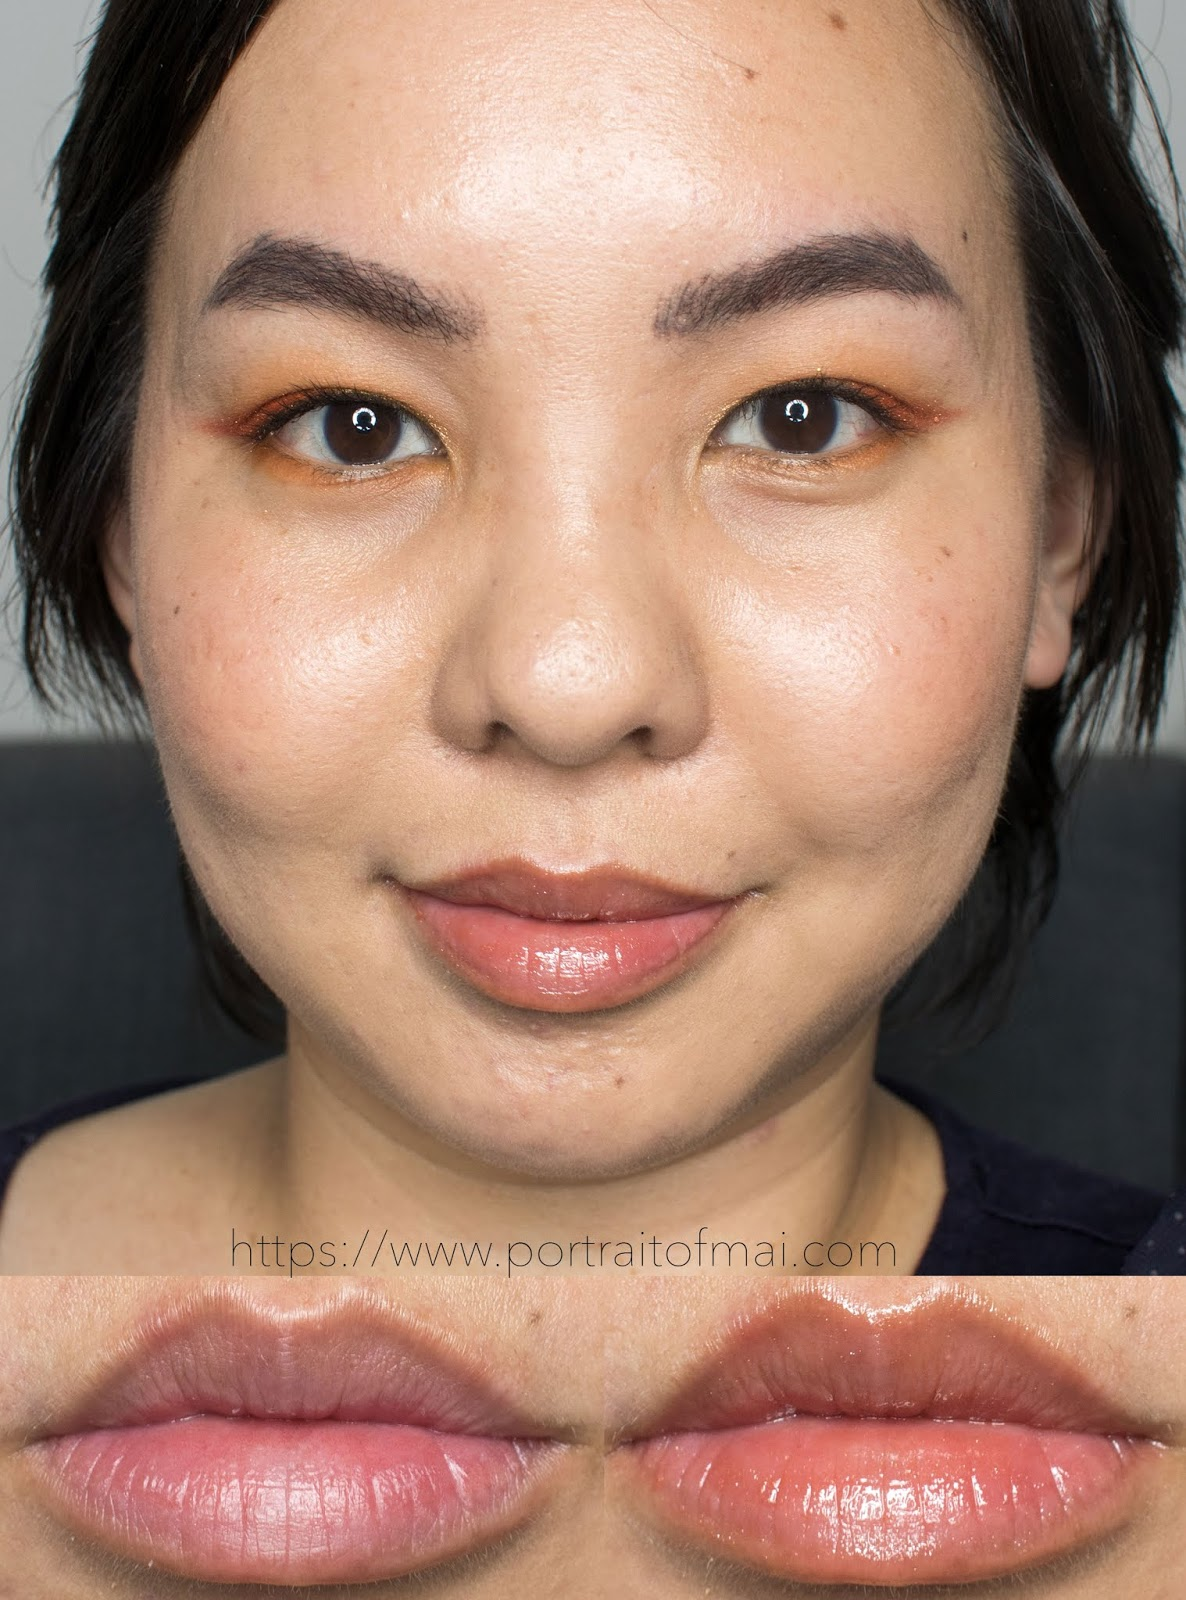 Persona Cosmetics Toffee Lip Gloss Swatch